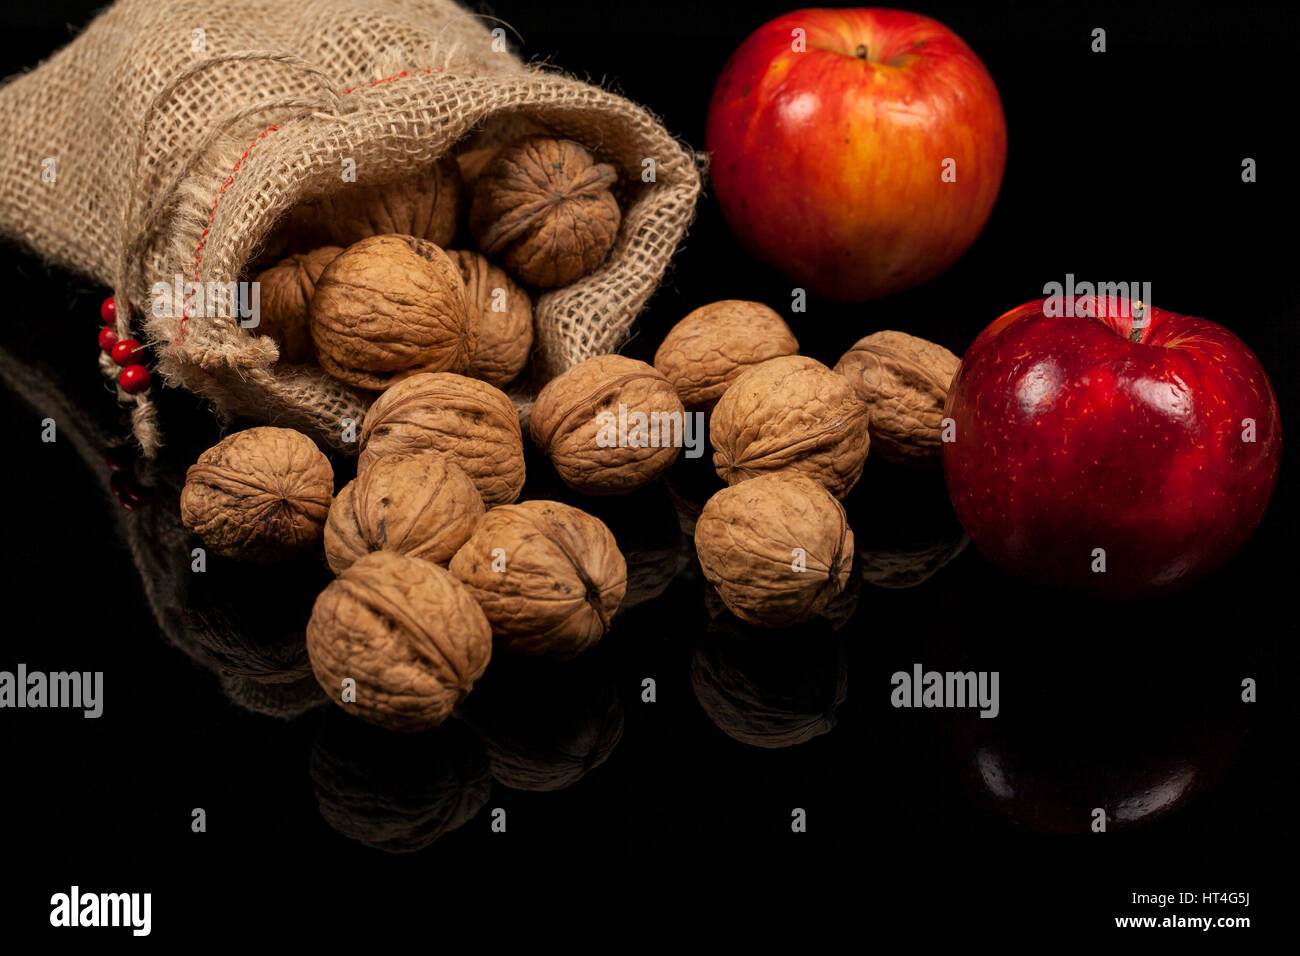 d5f59875b1ba Whole nuts with fresh red apples on a table on a black background ...